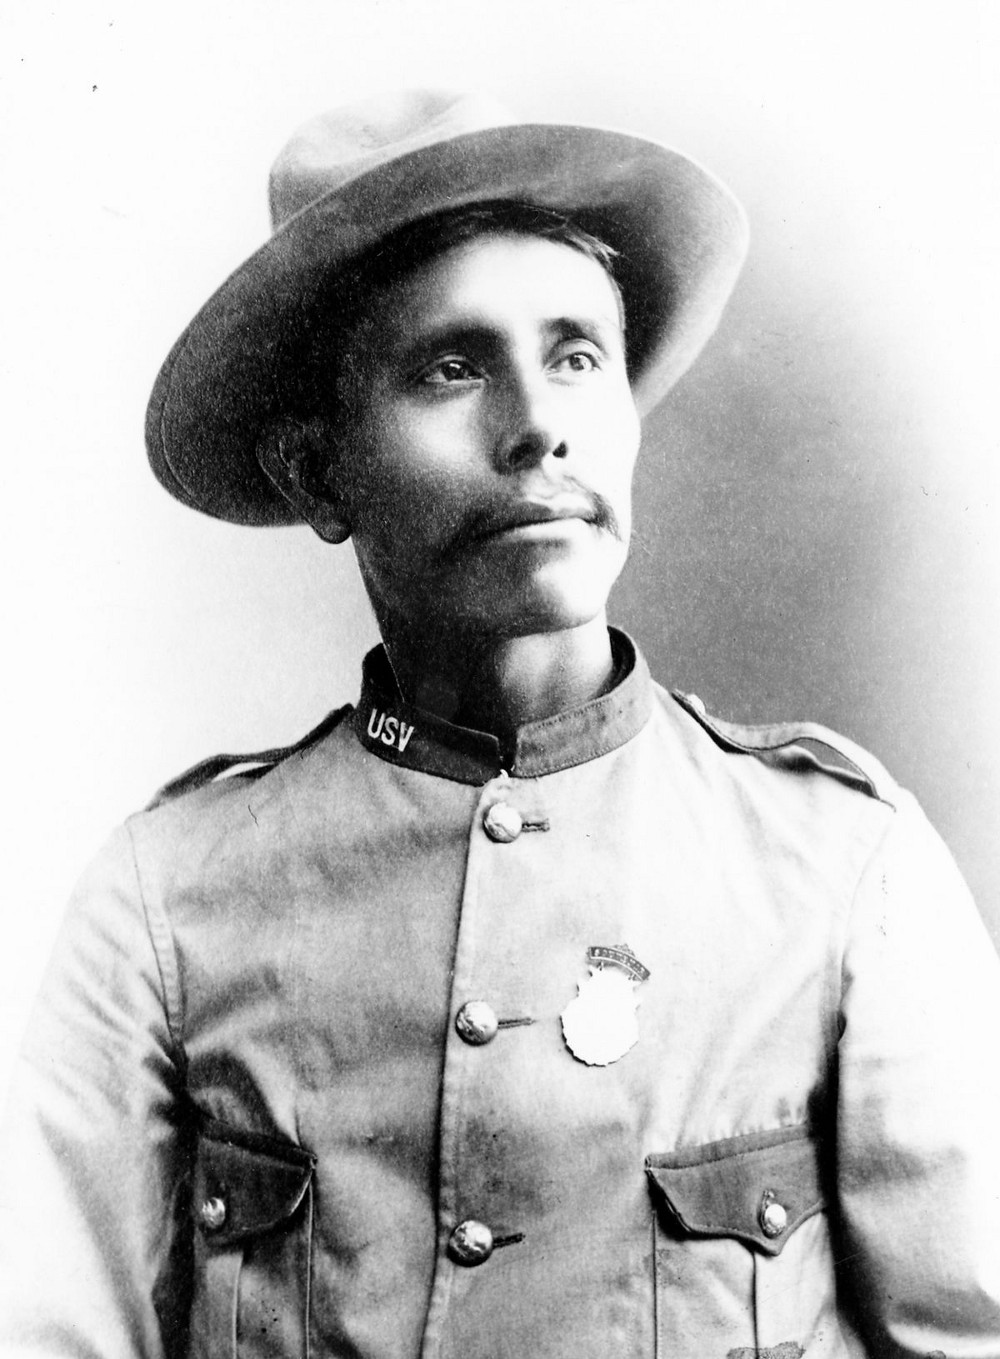 A portrait of William Pollack in a Rough Rider army uniform